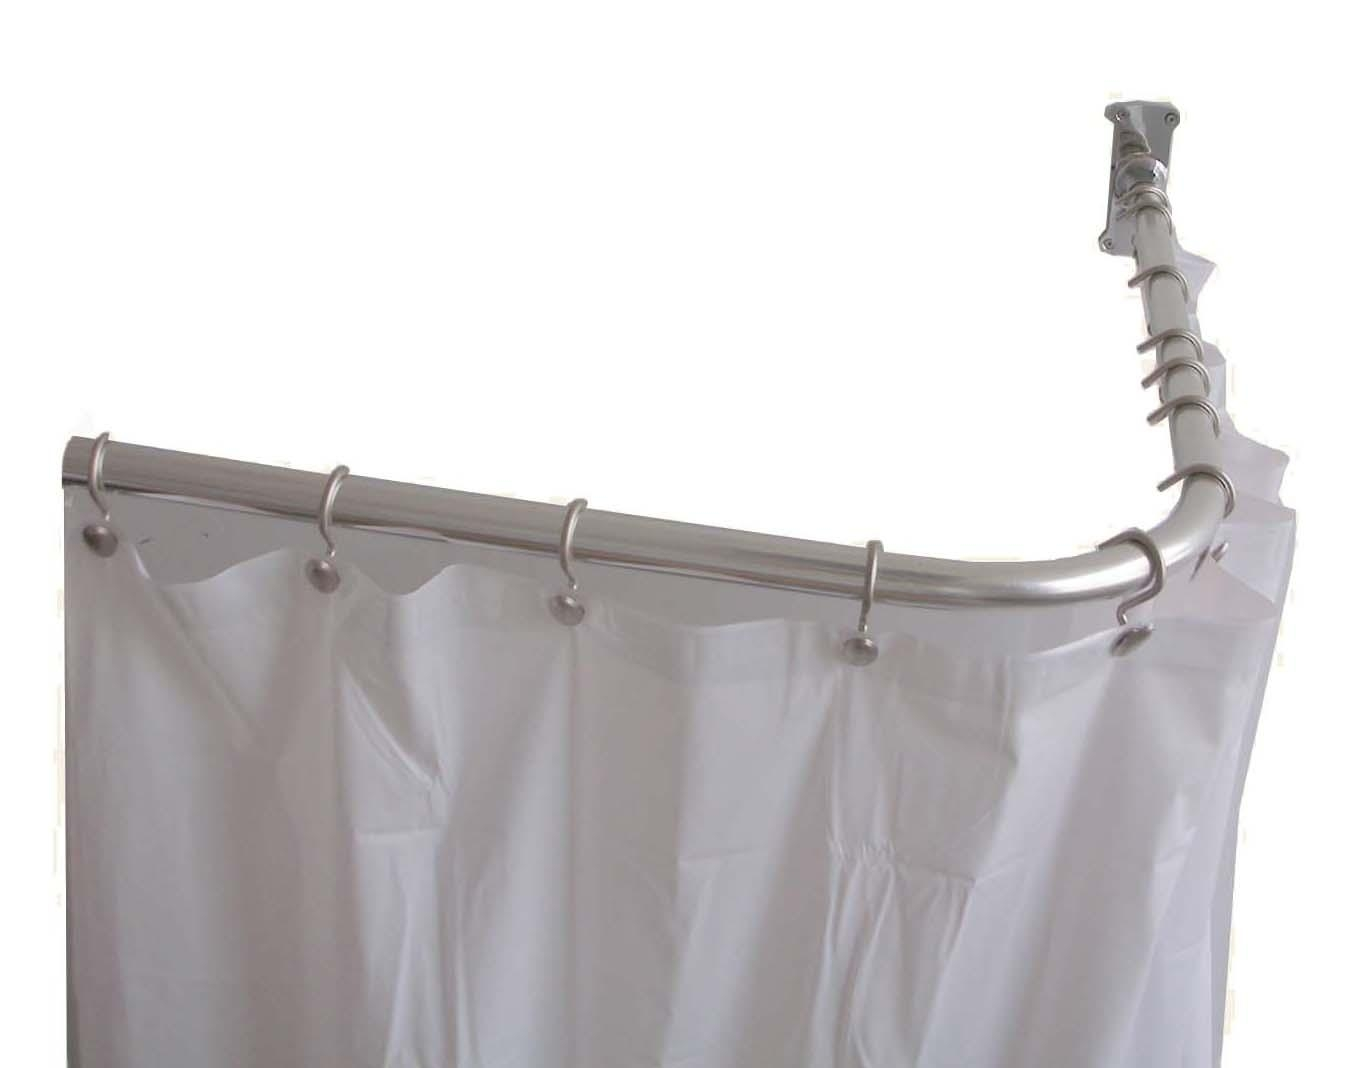 Most Decorative Shower Curtain Rods Best Home Decor Inspirations Within L Curtain Rods (Image 20 of 25)